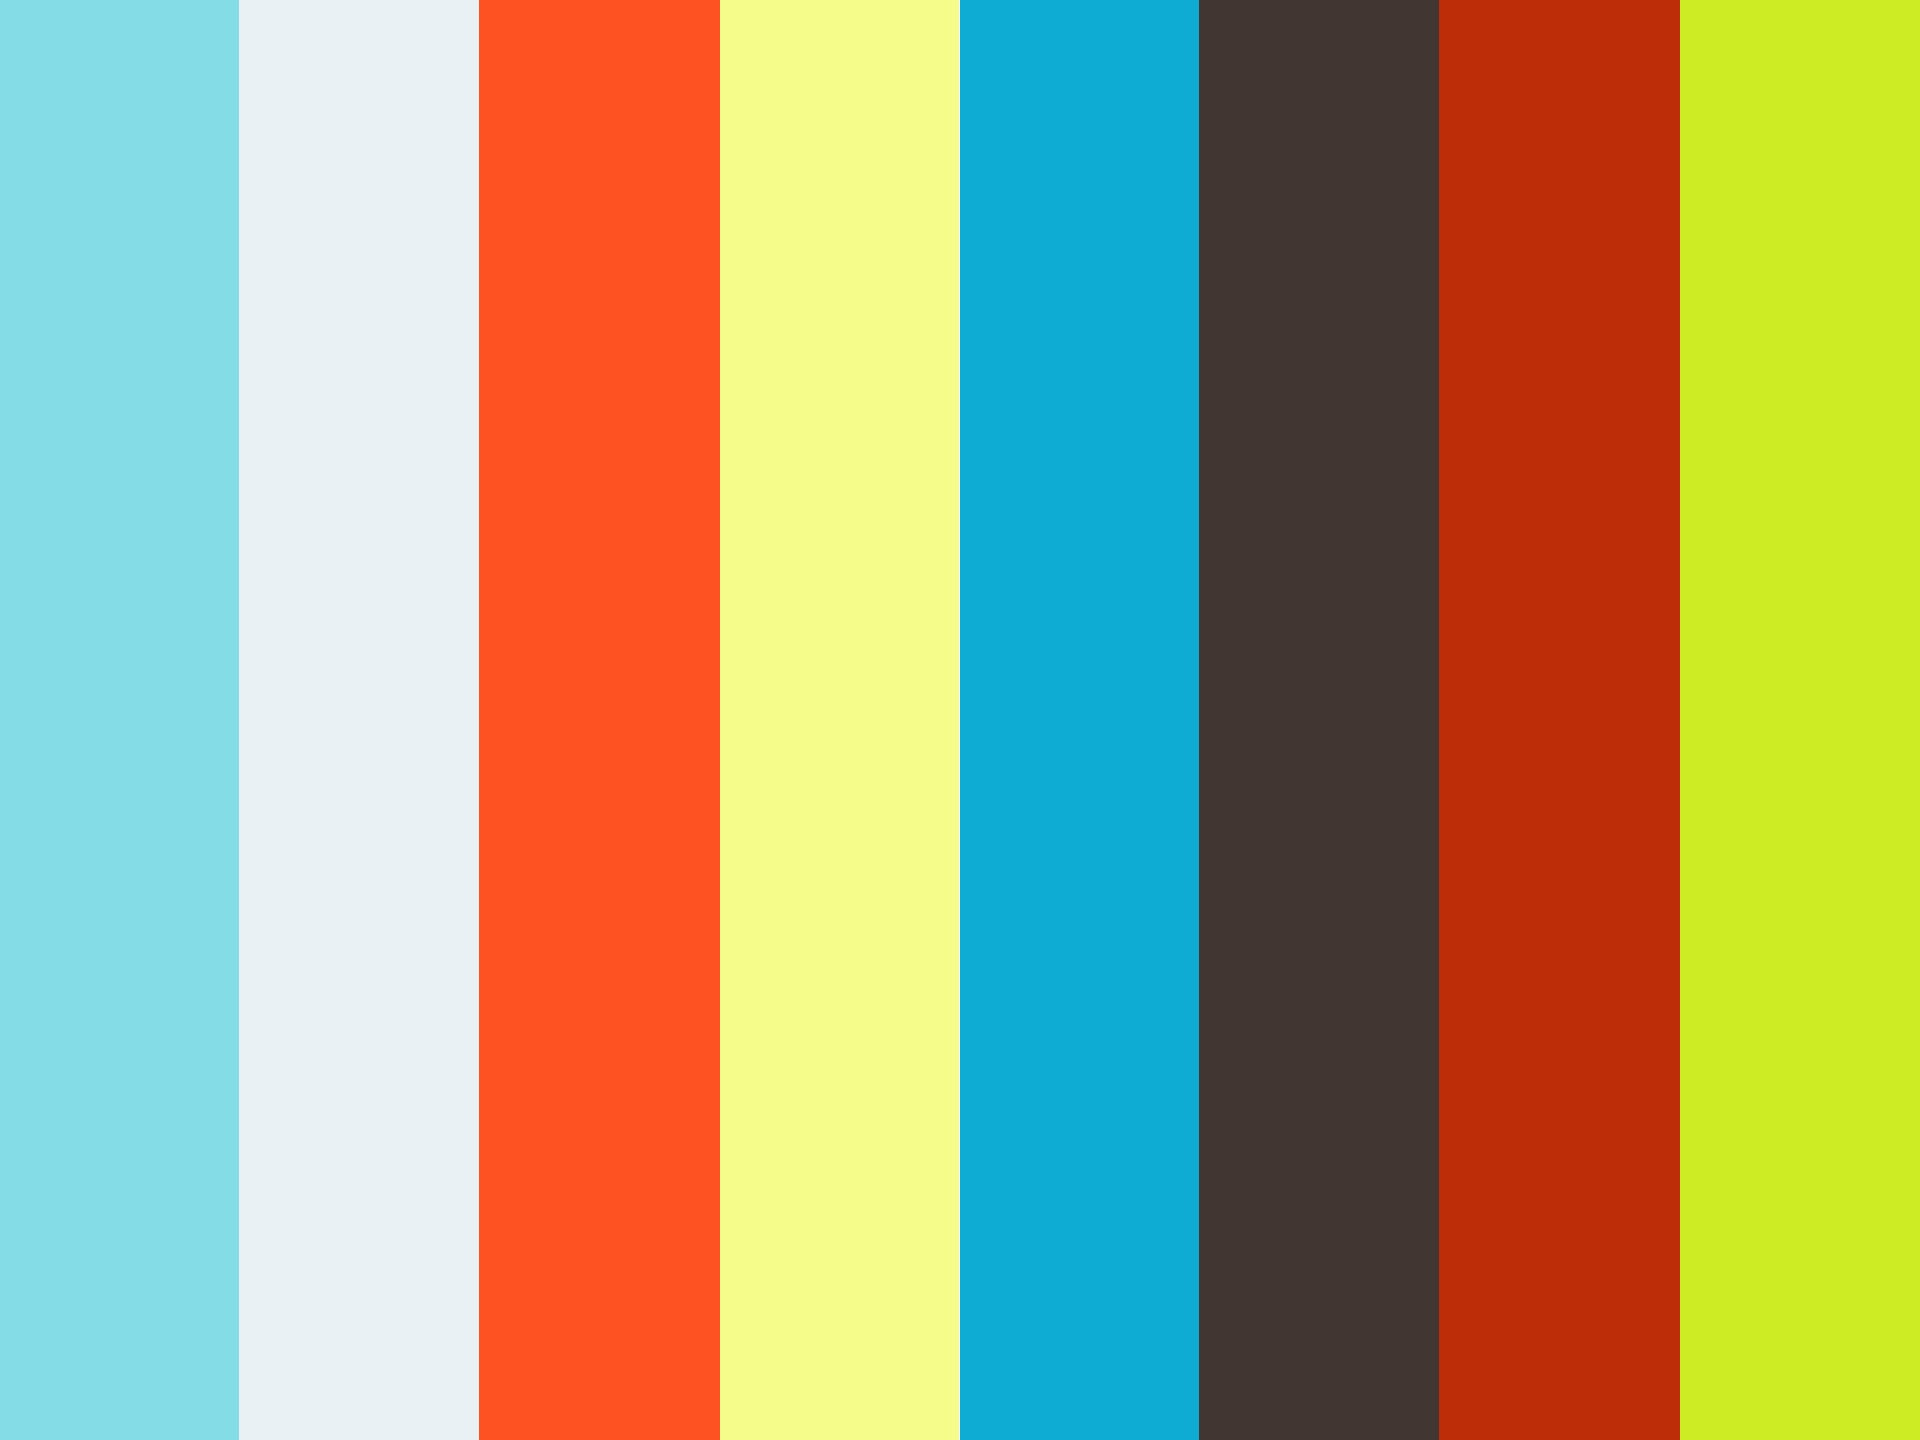 Laparoscopic Completion Proctectomy and Ileal Pouch-Anal Anastomosis in Patient with Previous Laparoscopic Total Abdominal Colectomy 2013